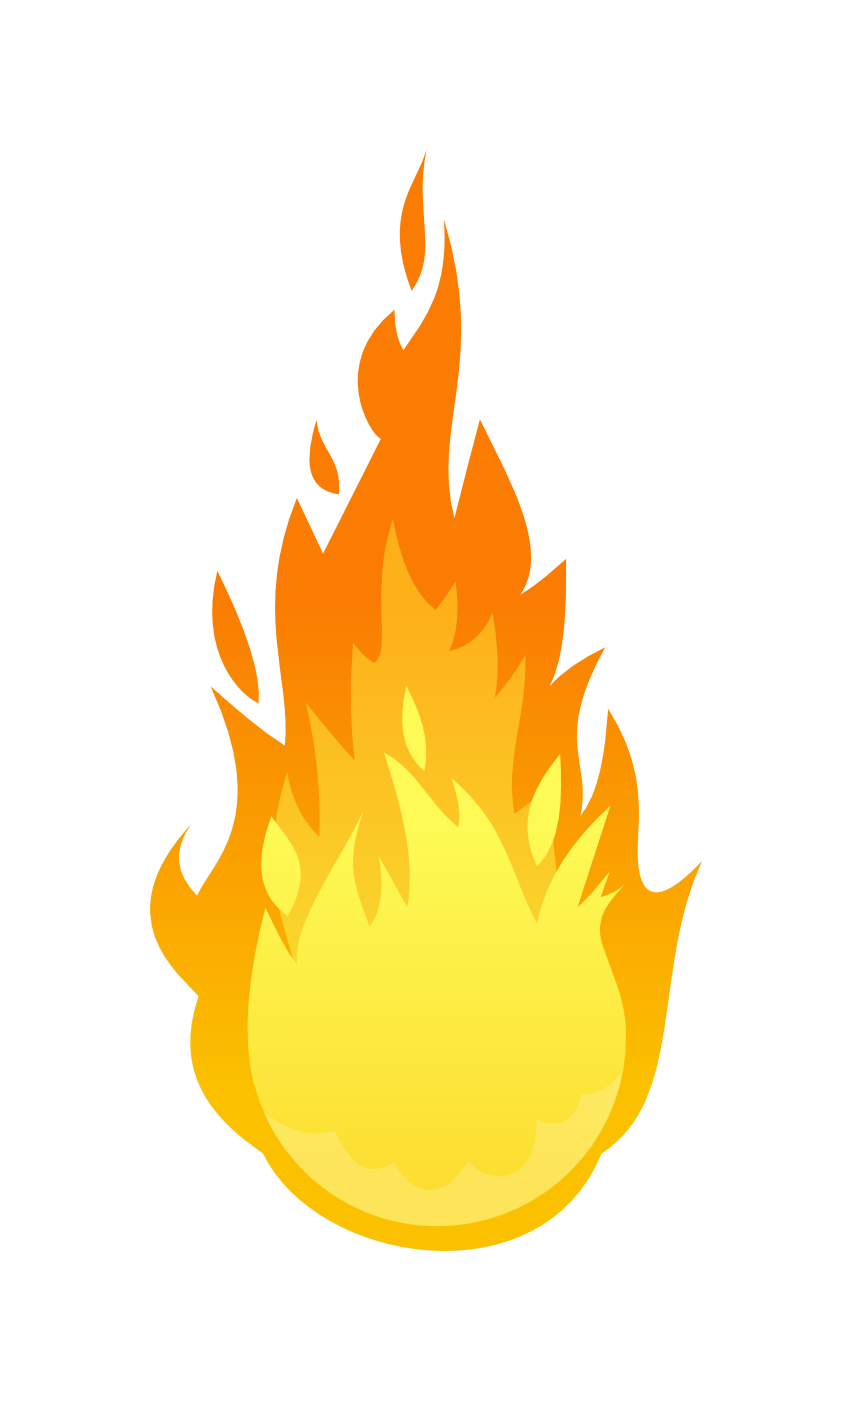 Fire flames png transparent. Vector campfire white background clip art download